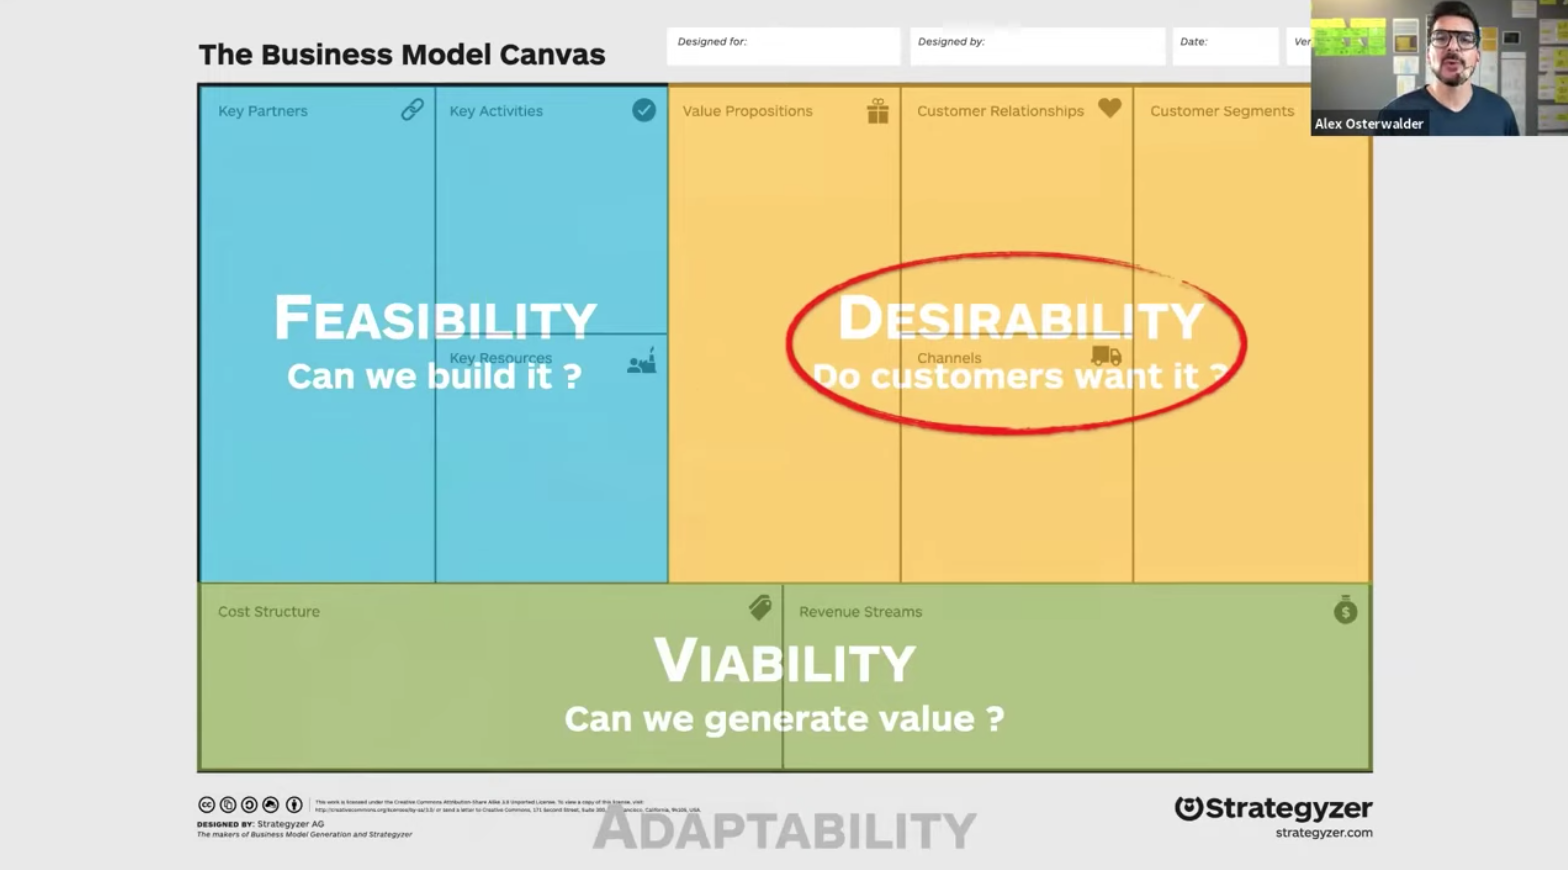 Desirability, feasibility, and viability hypotheses of a business model canvas